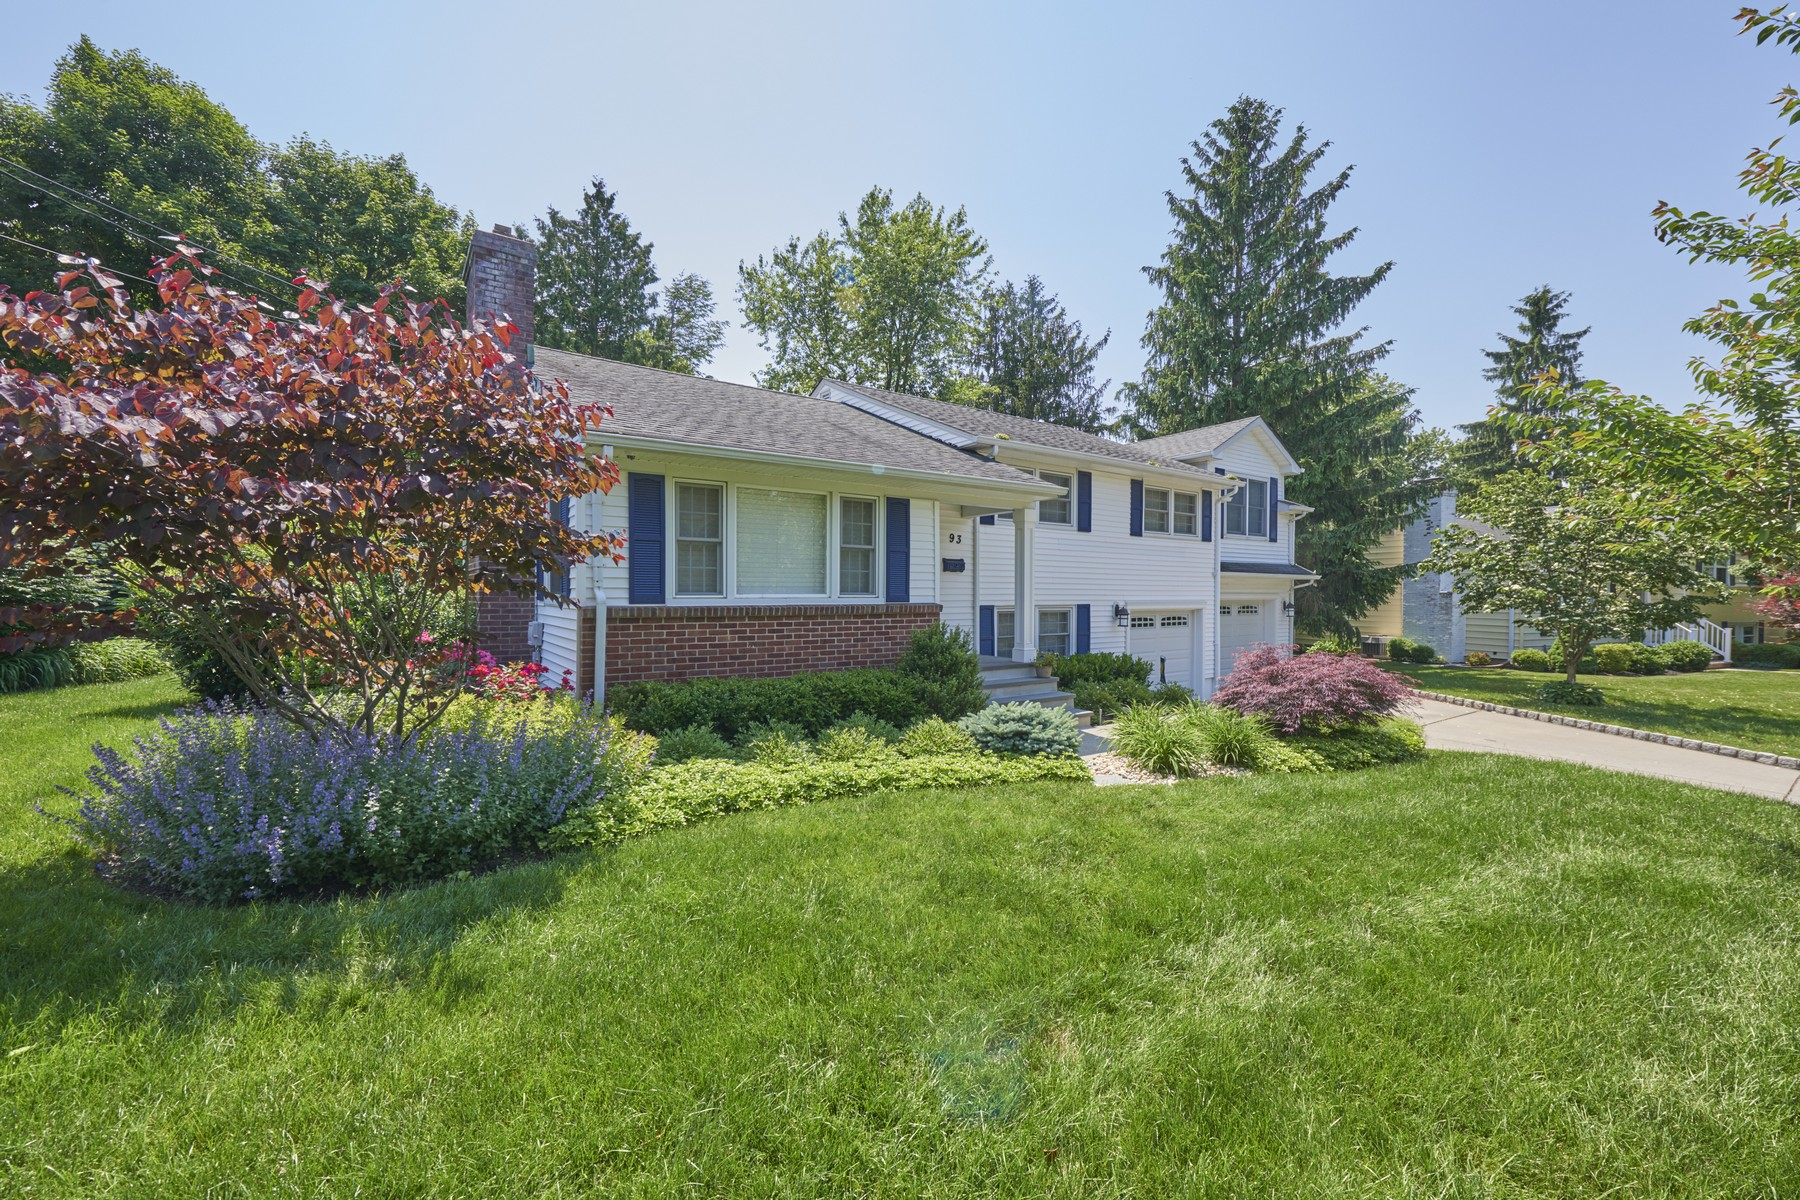 Single Family Homes for Sale at River Oaks Charmer 93 Spruce Drive Fair Haven, New Jersey 07704 United States